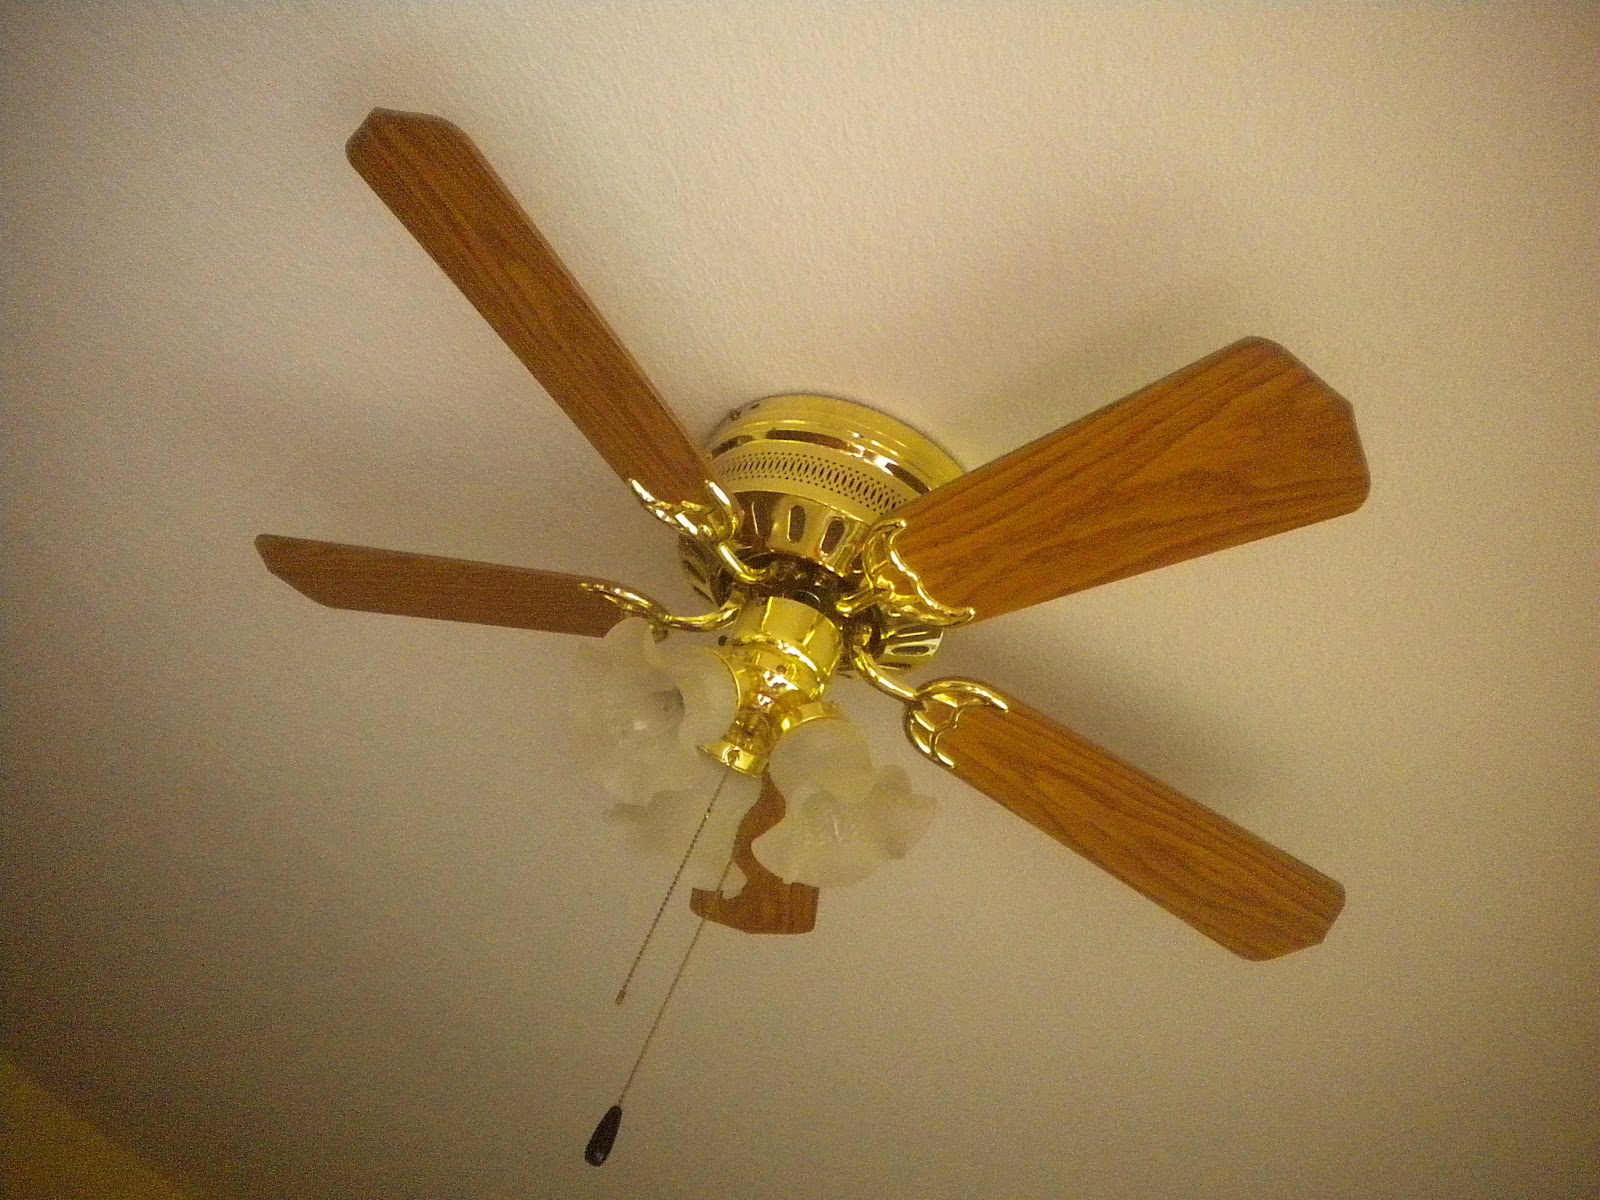 Home Depot Ceiling Fans On Sale | WANTED Imagery